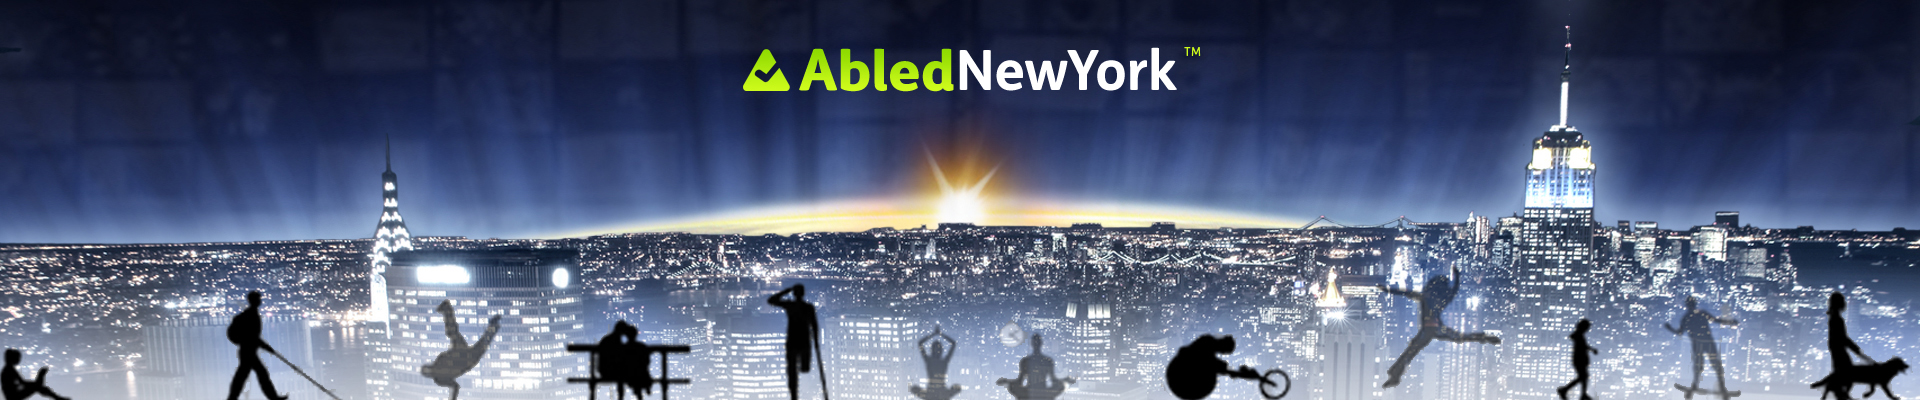 AbledNewYork banner shows a nighttime cityscape of New York City with the silhouettes of differently-abled people along the bottom of the banner who ware walking, sitting, rolling in a racing wheelchair, walking with a guide dog, doing yoga etc. The AbledNewYork logo is at the top.